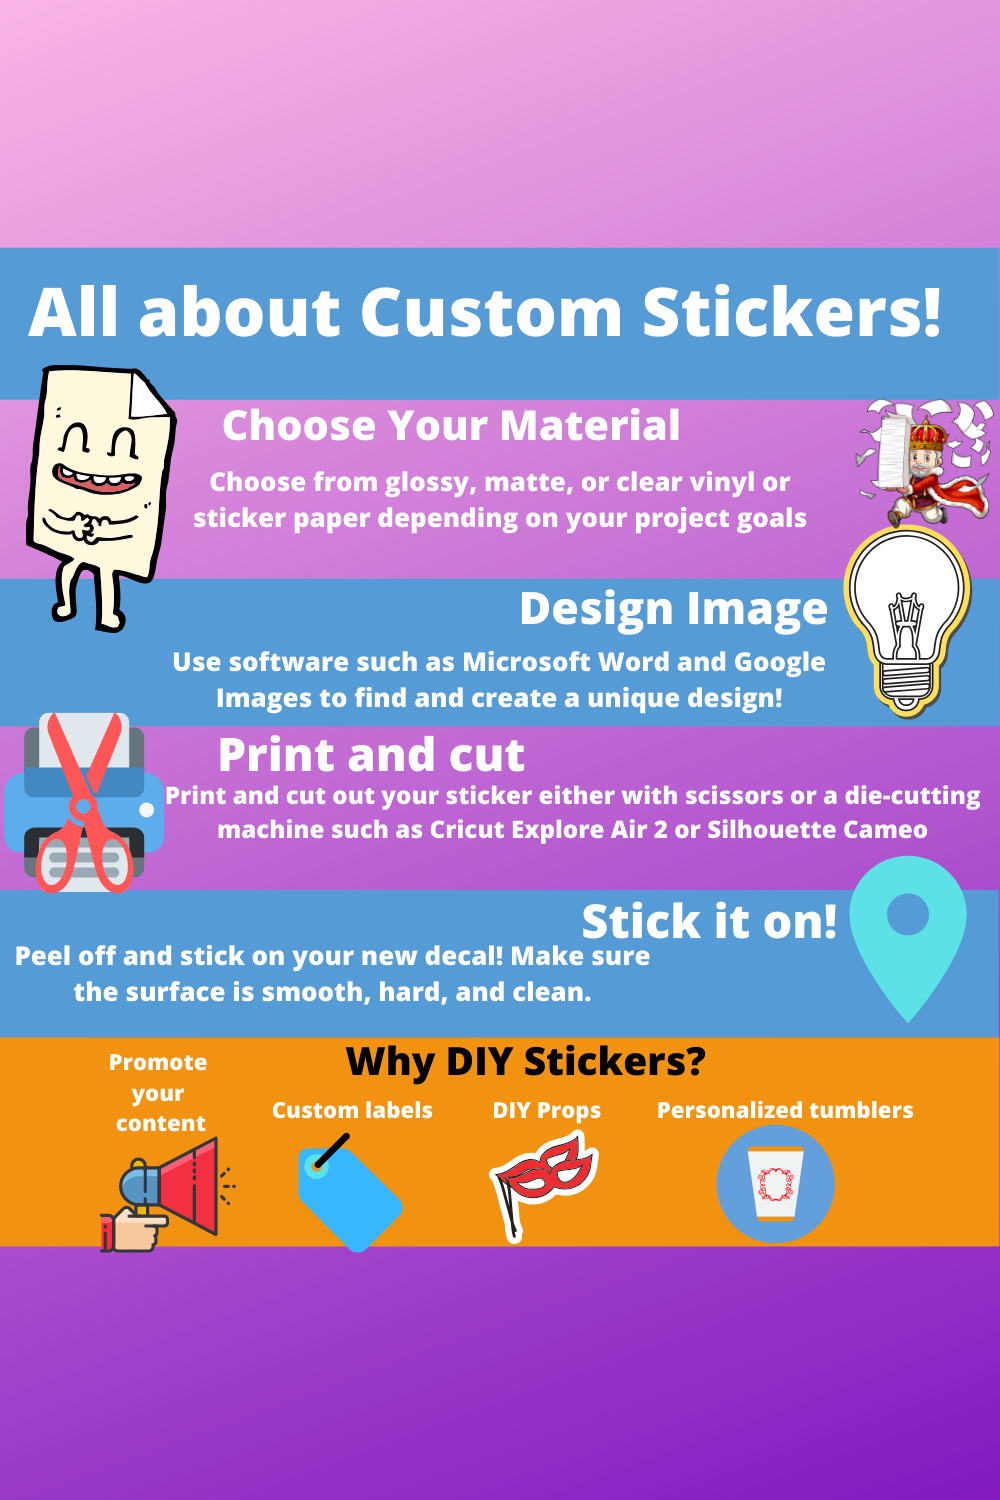 All About Custom Stickers In 2020 Waterslide Decal Paper Vinyl Sticker Paper Decal Paper